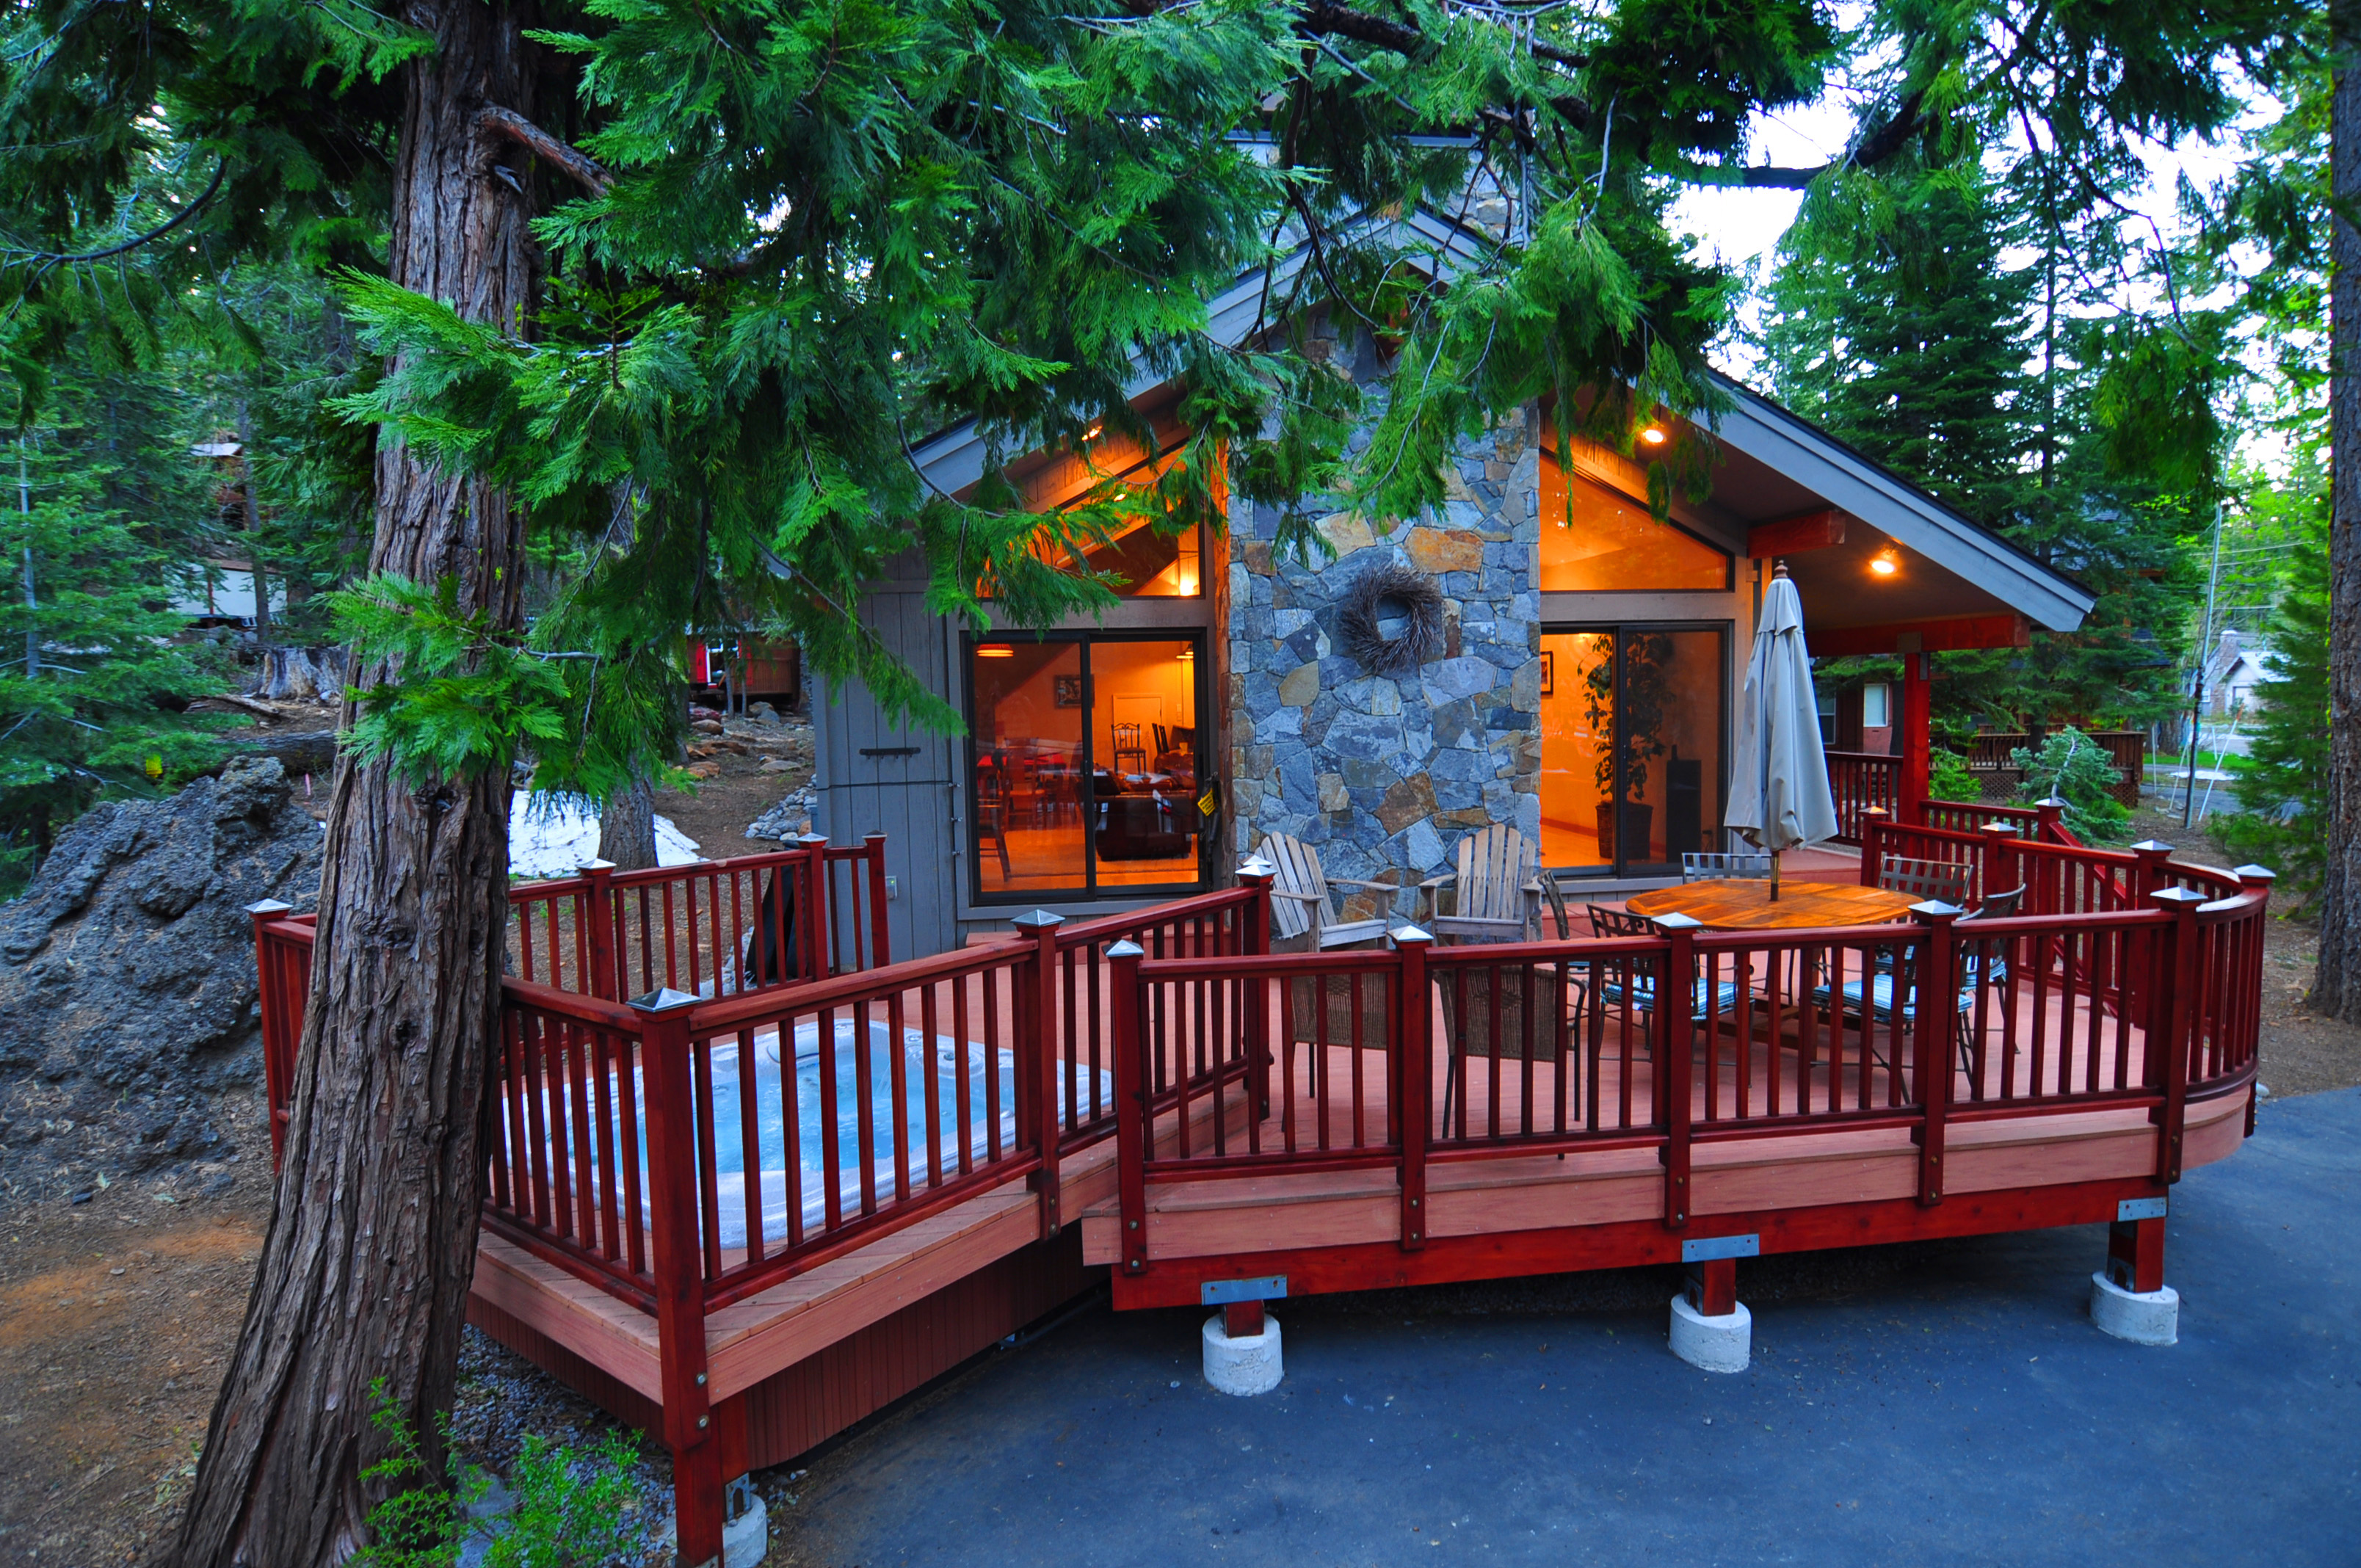 lake vacation new cabins rnr area cabin tahoe drive rentals south rental capri